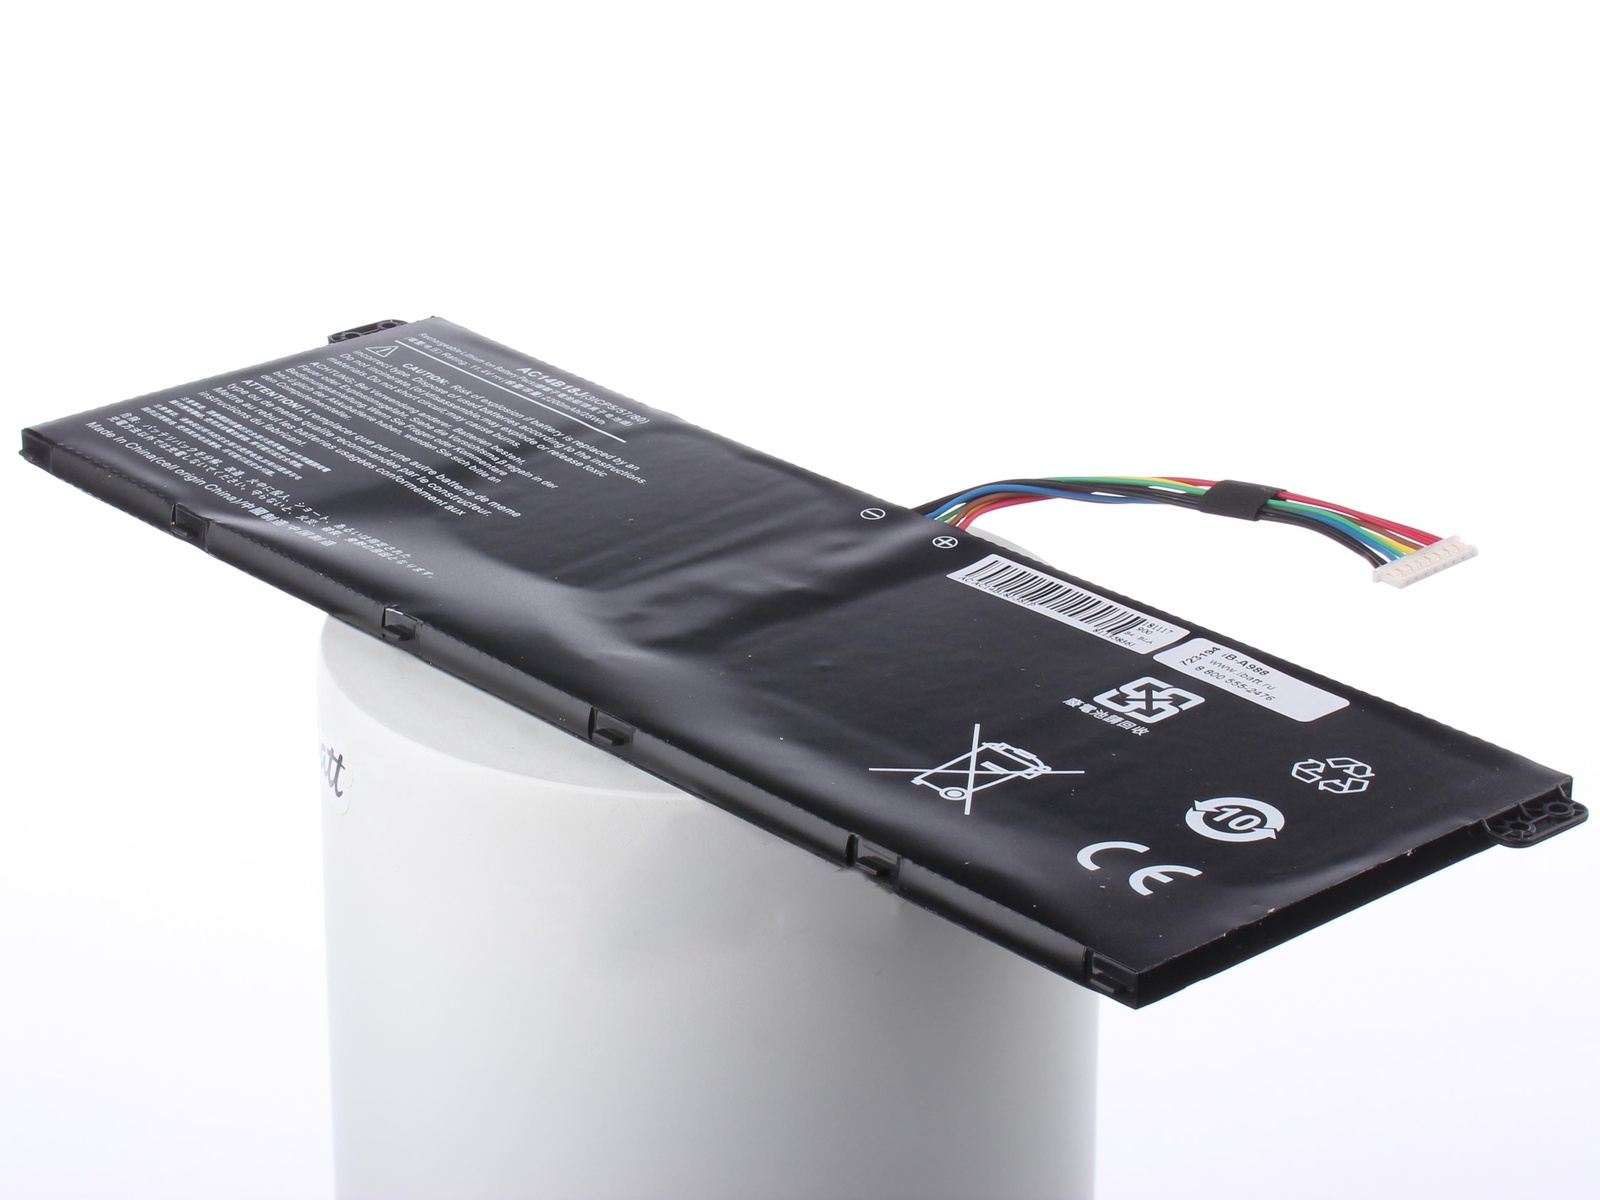 Аккумуляторная батарея iBatt iB-T2-A988 3220mAh для ноутбуков Acer ASPIRE ES1-131-C77V, Aspire ES1-731-C50Q, Aspire ES1-521-26UW, ASPIRE ES1-731-P7JY, ASPIRE ES1-531-P81V, Aspire ES1-521-21ST, ASPIRE ES1-531-C34D, ASPIRE ES1-331-P3K1, Aspire ES1-731-P2PF, for acer aspire es1 531 n15w4 screen matrix for laptop 15 6 edp 30 pin led display